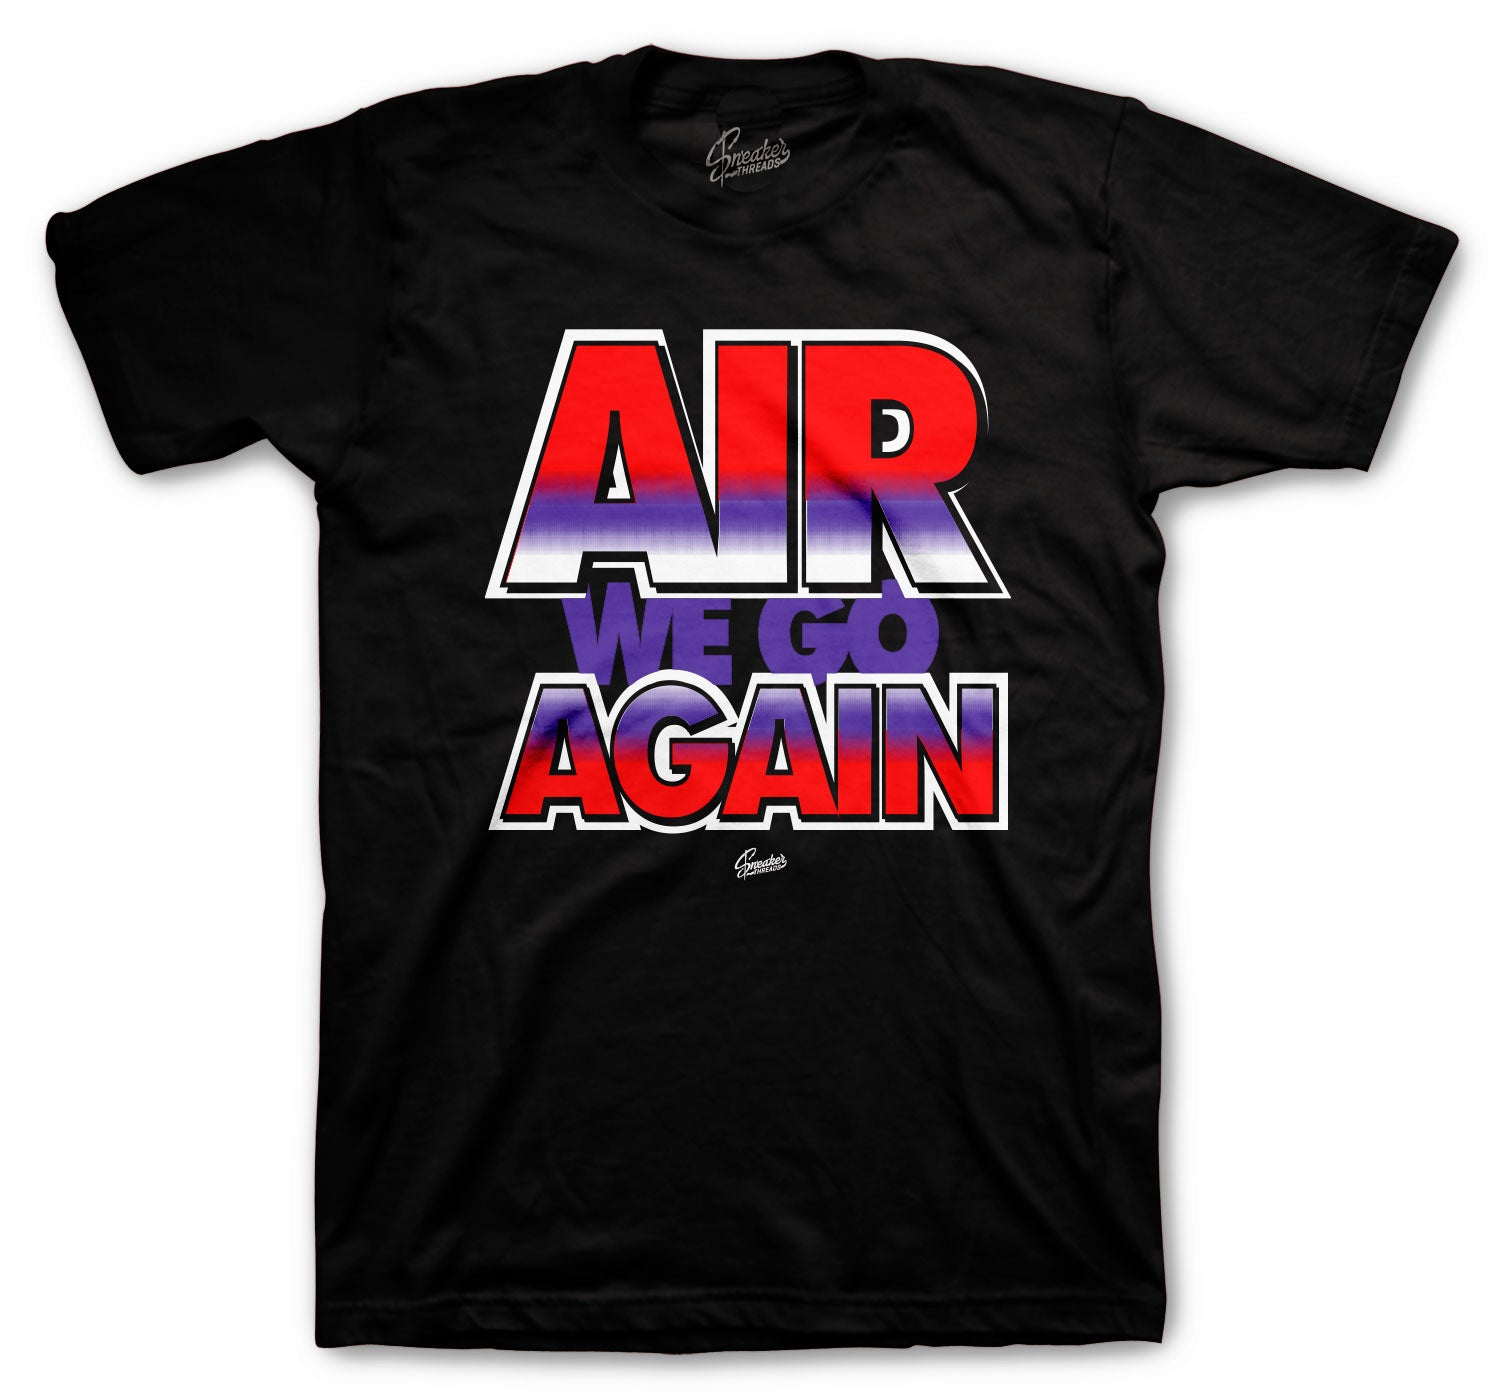 Jordan 5 Top 3 Air We Go Shirt